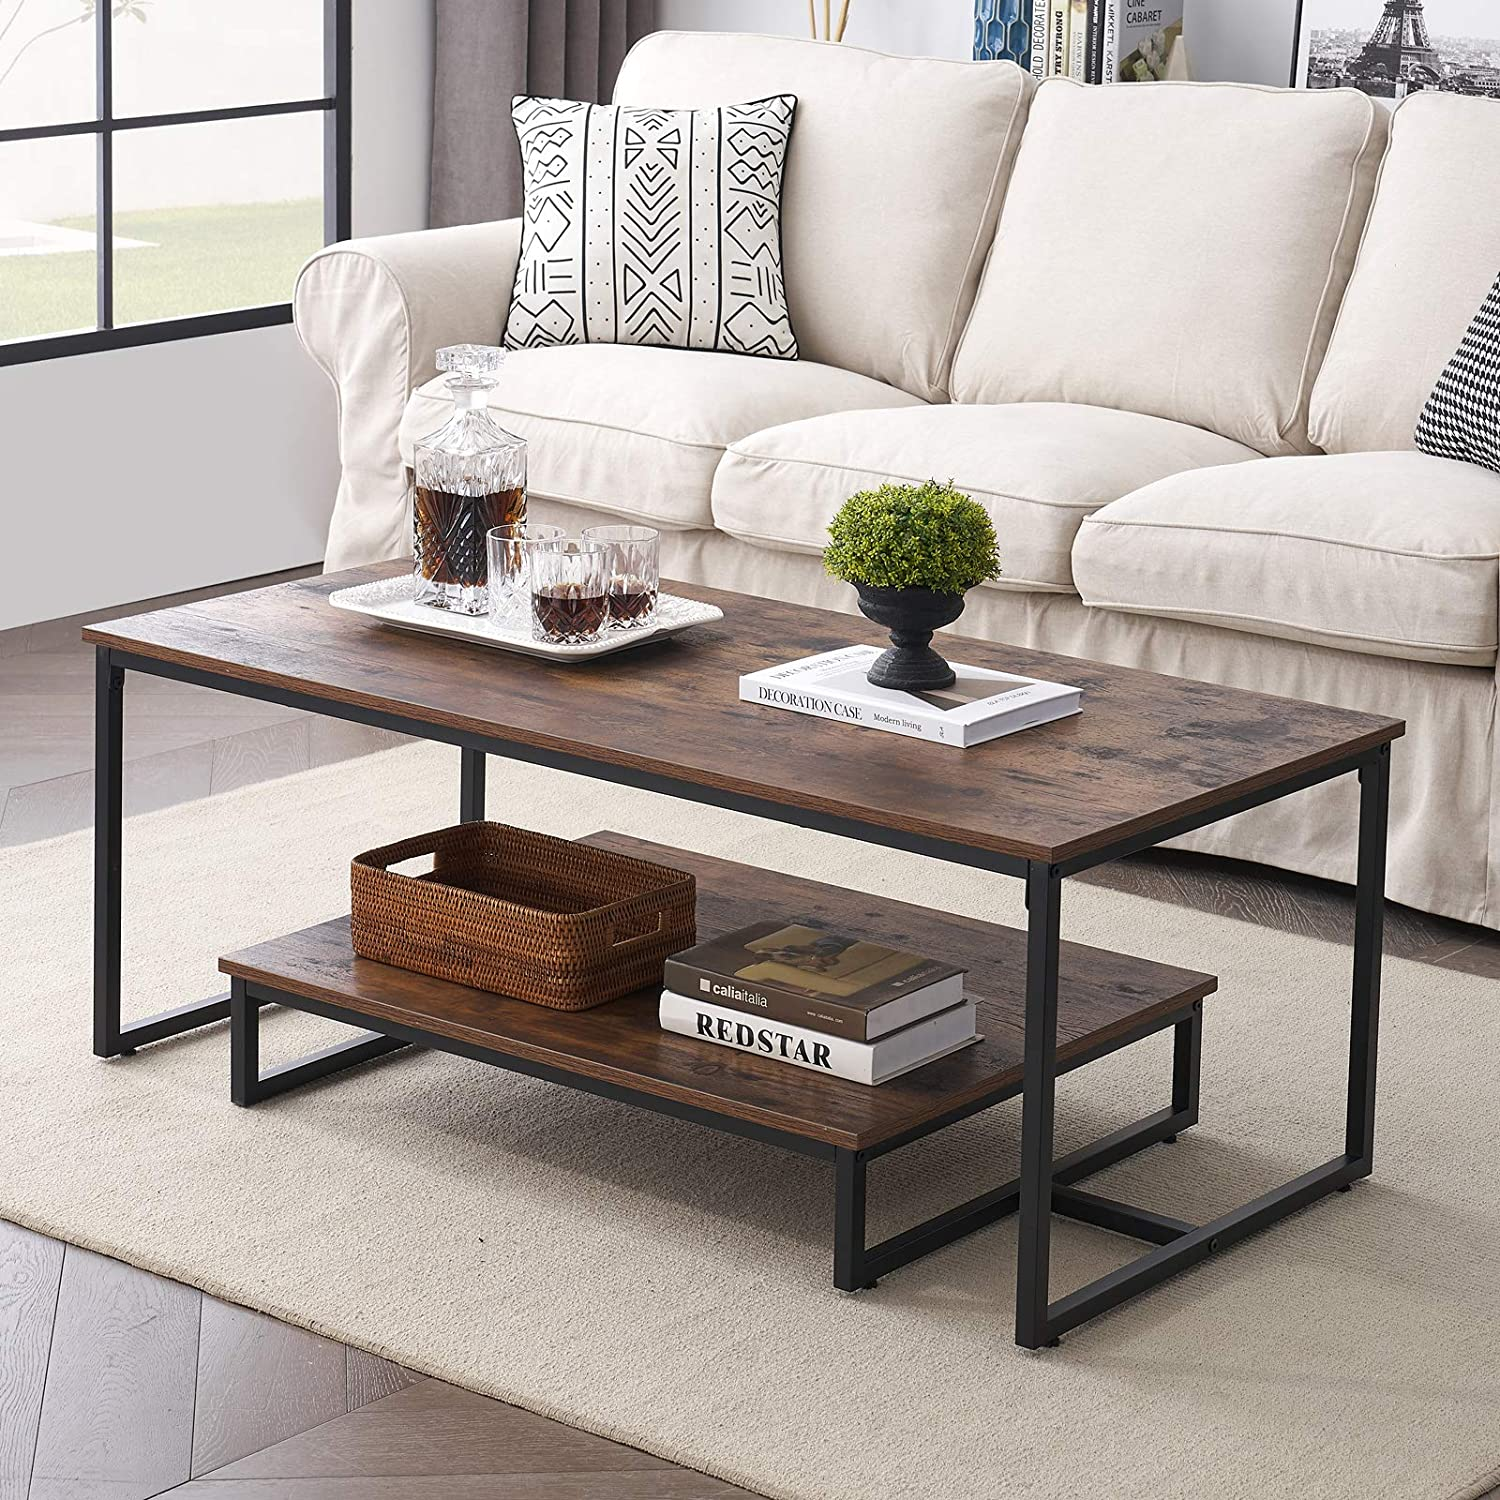 MHAOSEHU Industrial Coffee Table for Living Room, Rustic Cocktail Table with Storage Shelf, Wood Look Furniture with Metal Frame, 47 inch Rustic Brown